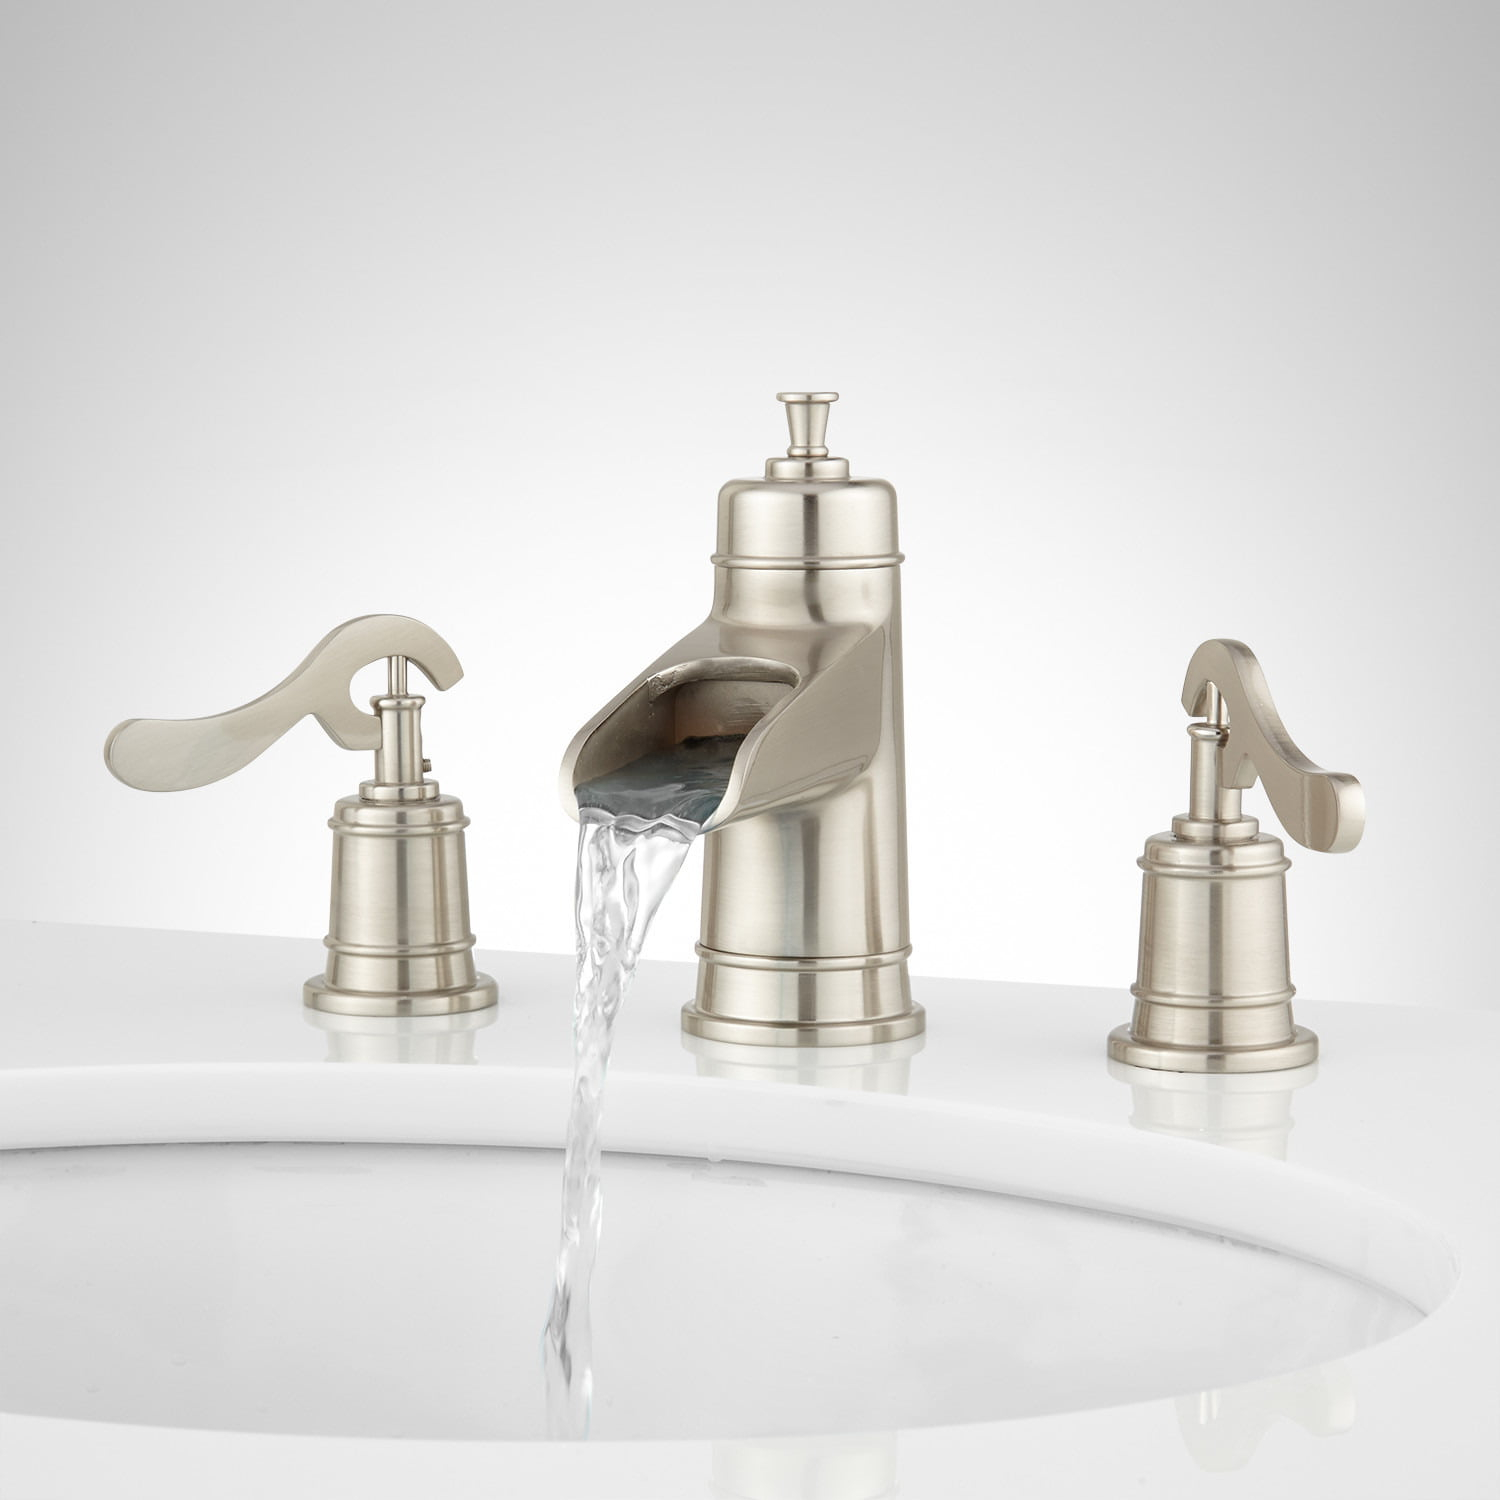 Melton Widespread Waterfall Bathroom Faucet Bathroom intended for sizing 1500 X 1500